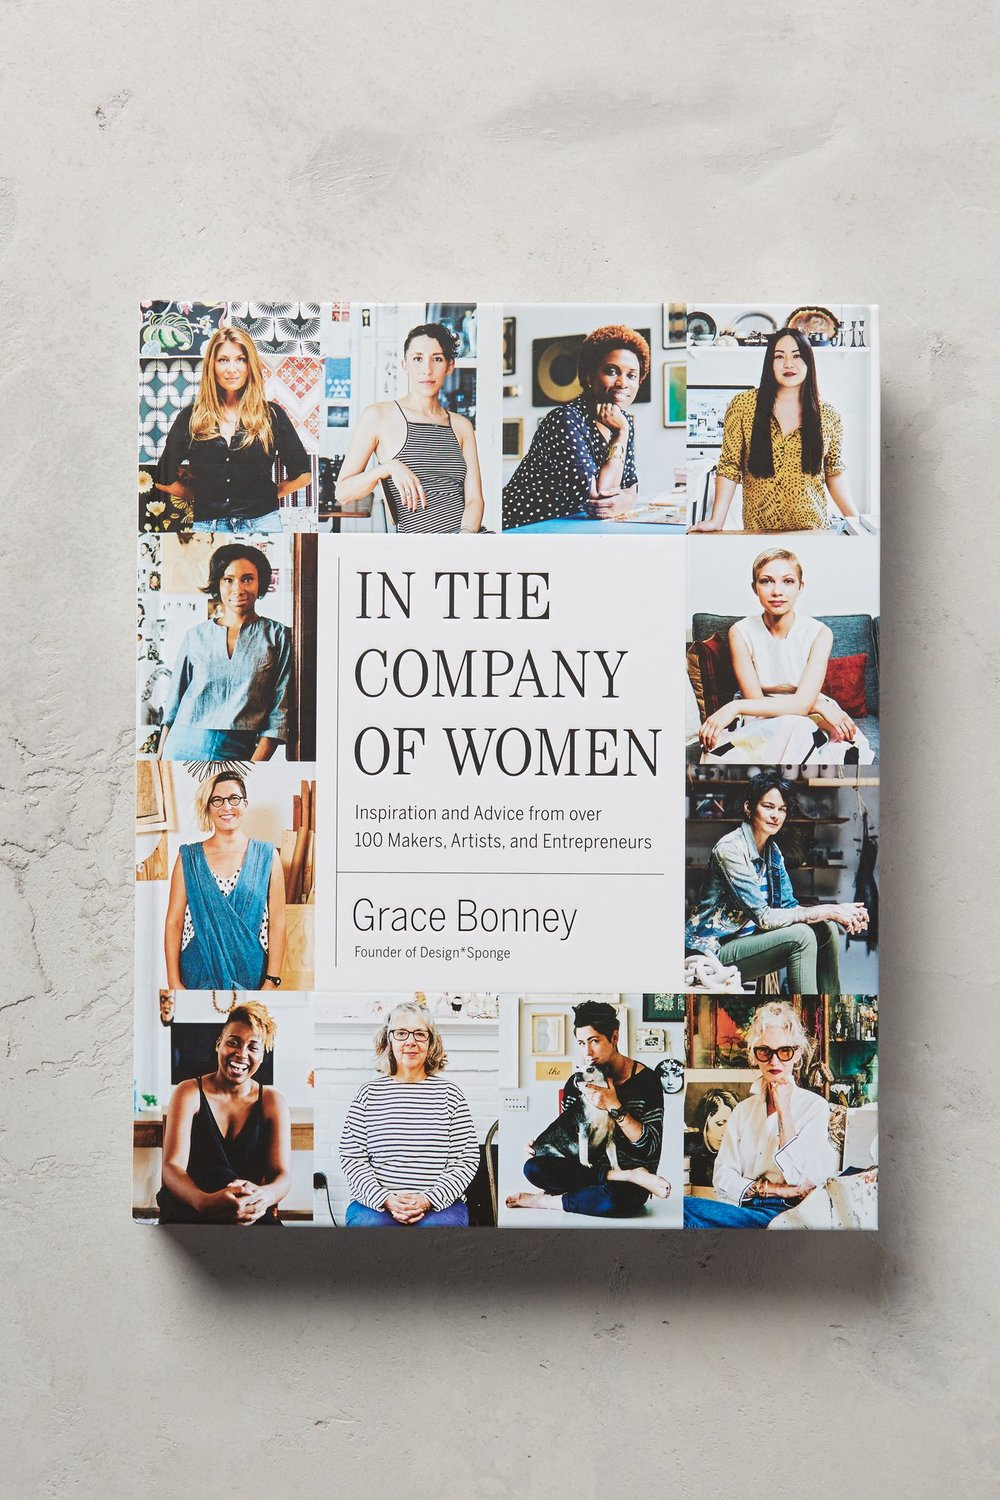 In The Company Of Women - Across the globe, women are embracing the entrepreneurial spirit and starting their own creative businesses. Featuring interviews and portraits of 100 creative leaders, Mom will love this dose of regeneration is pursuit of her goals, or maybe find inspiration to start her own fempire. $35.00